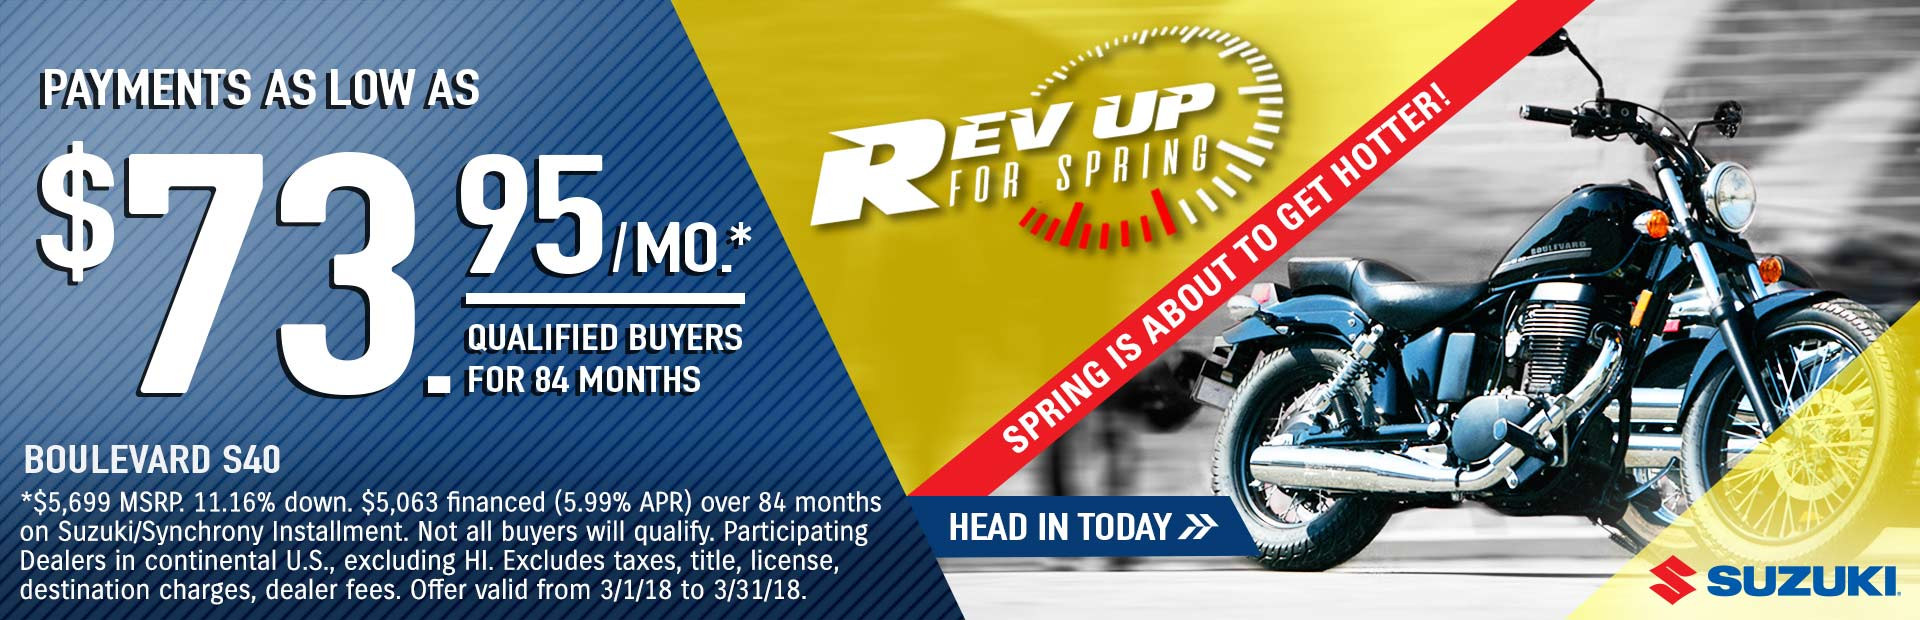 Suzuki: Rev Up for Spring - Boulevard S40